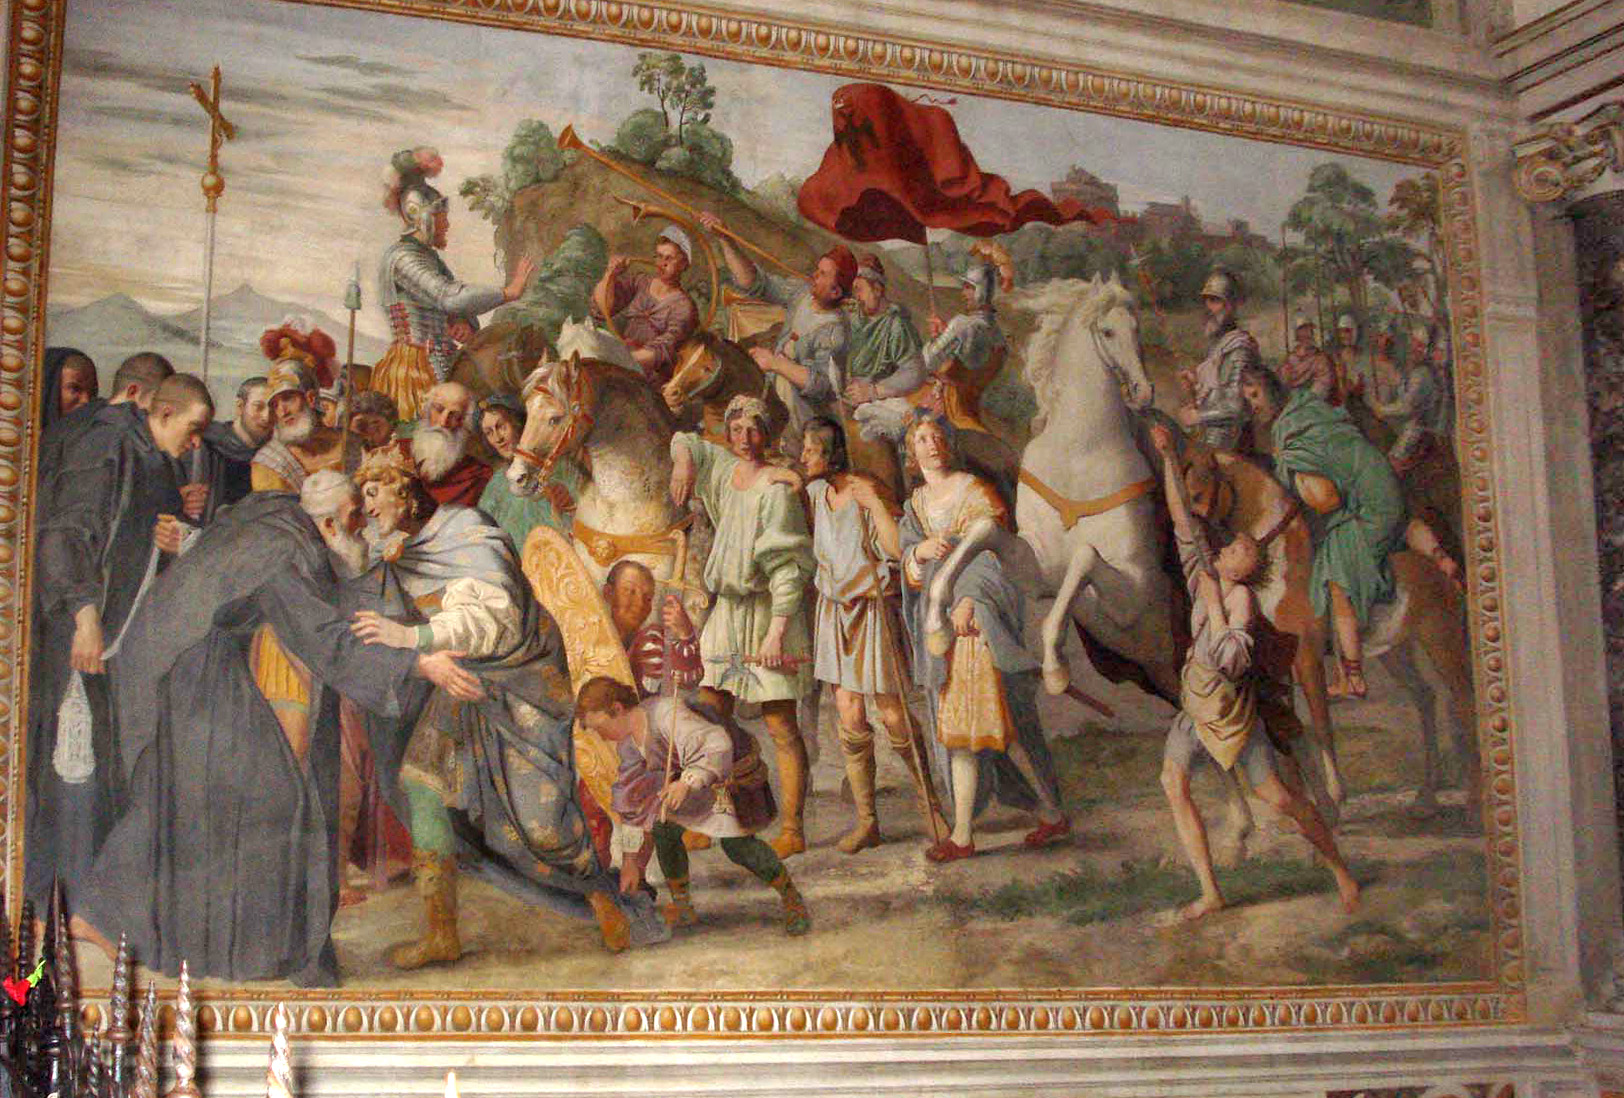 Image result for domenichino, st. nilo and otto III meeting, public domain images